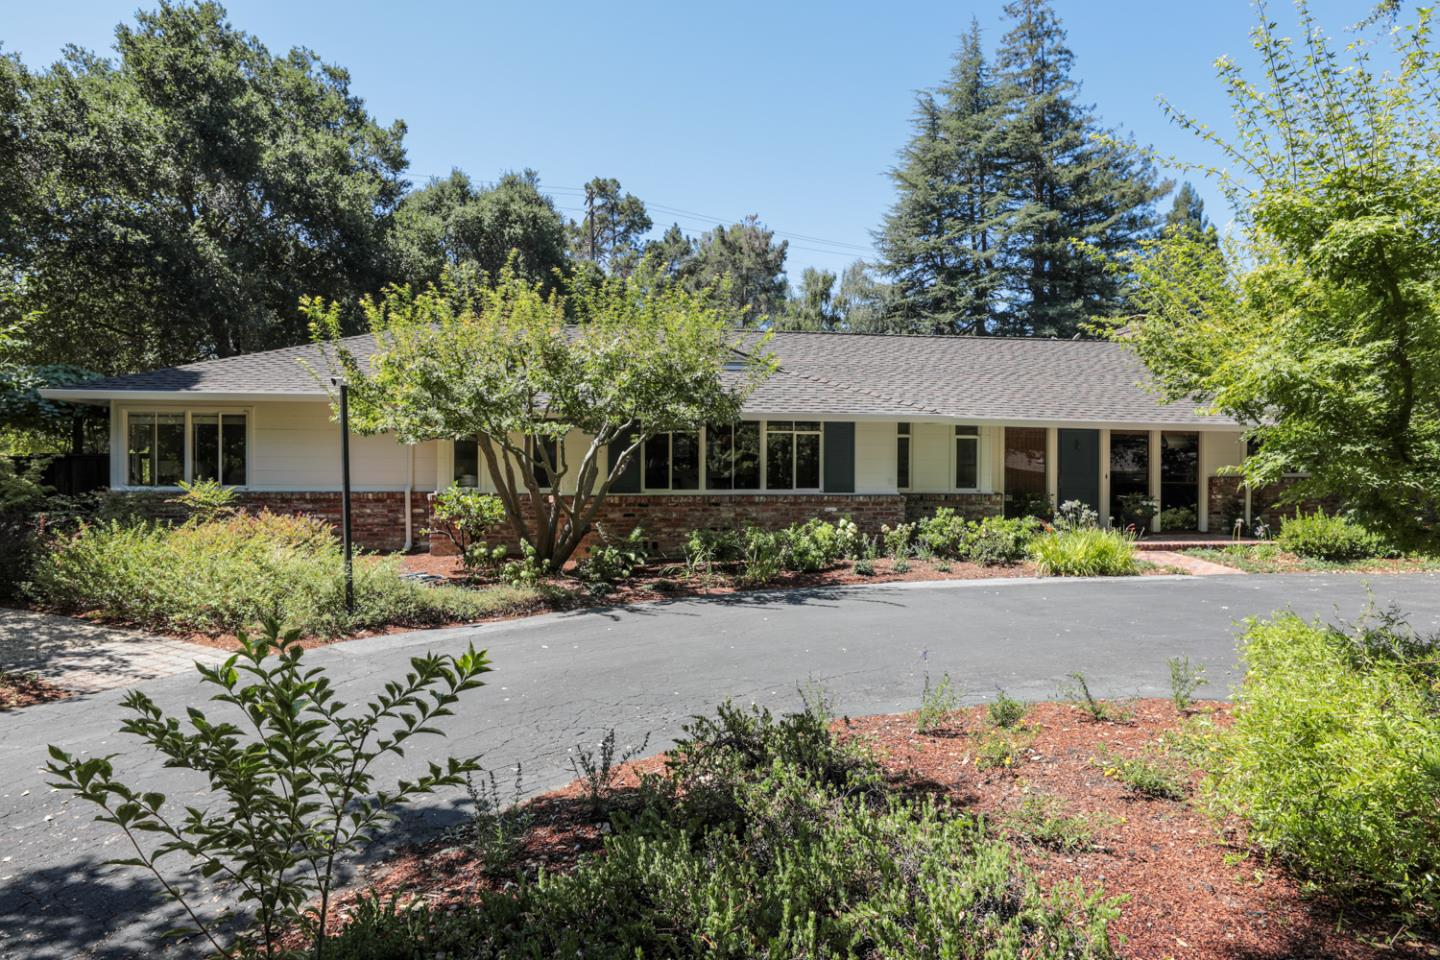 3 IRVING AVE, ATHERTON, CA 94027